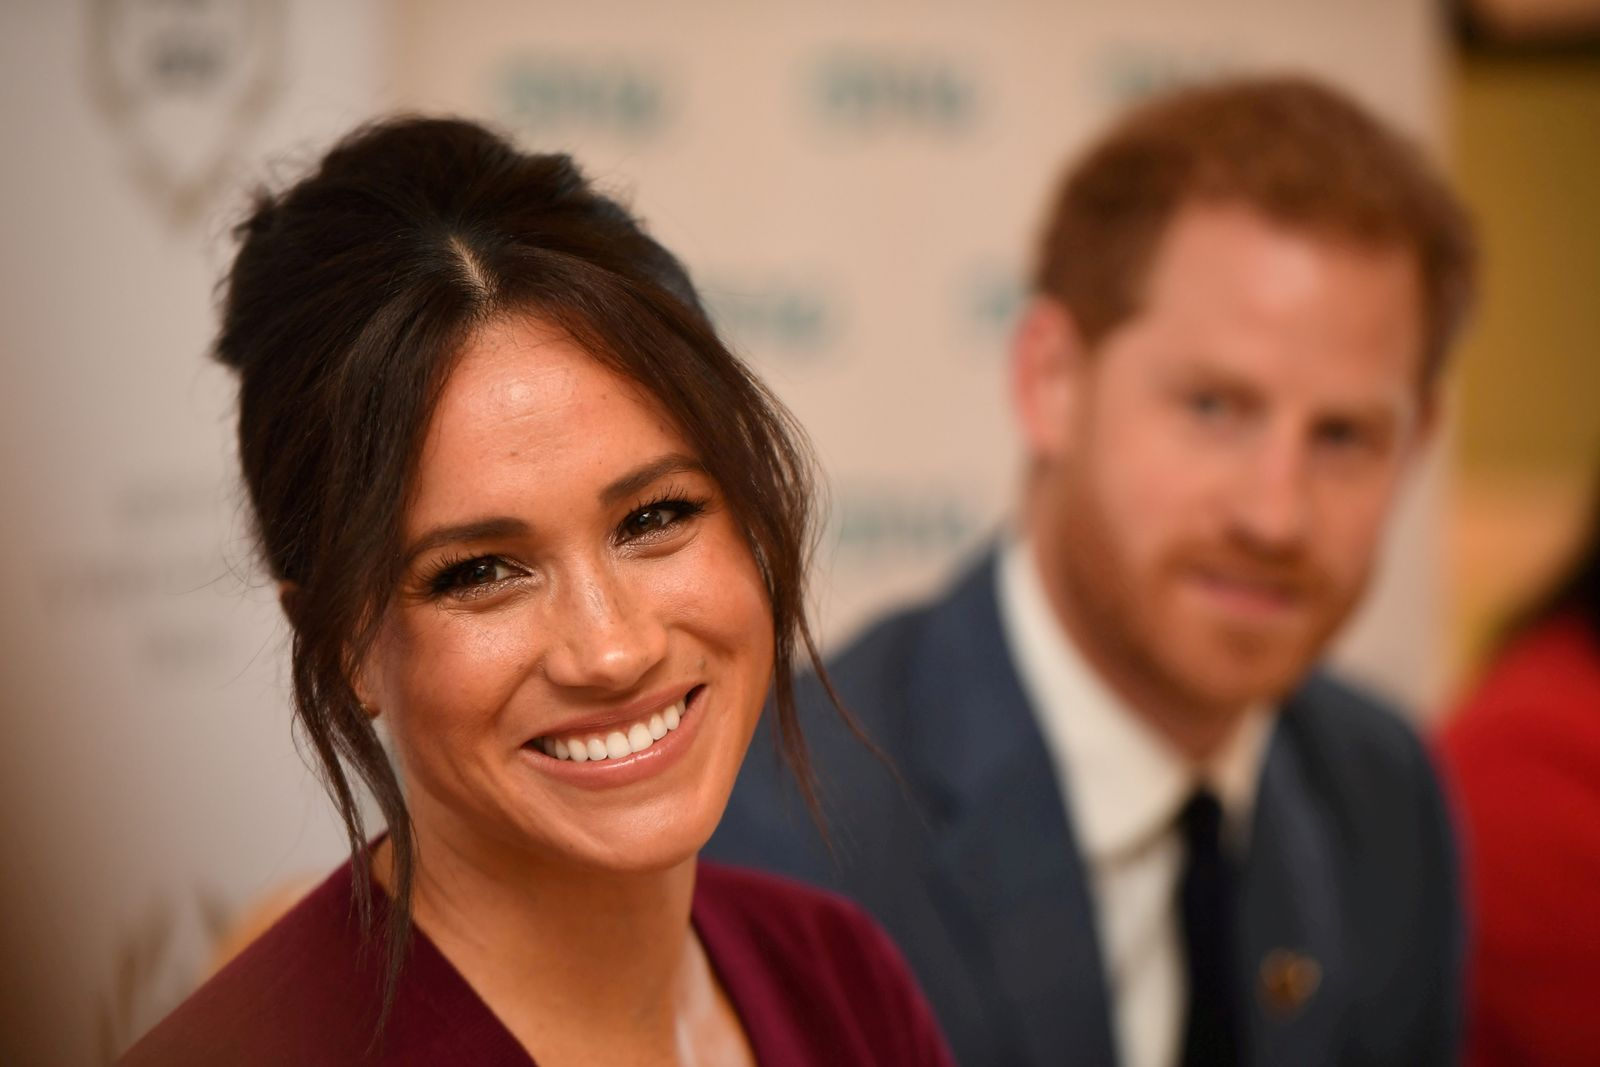 FILE PHOTO: FILE PHOTO: Britain's Meghan, the Duchess of Sussex, and Prince Harry, Duke of Sussex, attend a roundtable discussion on gender equality with The Queen's Commonwealth Trust (QCT) and One Young World at Windsor Castle